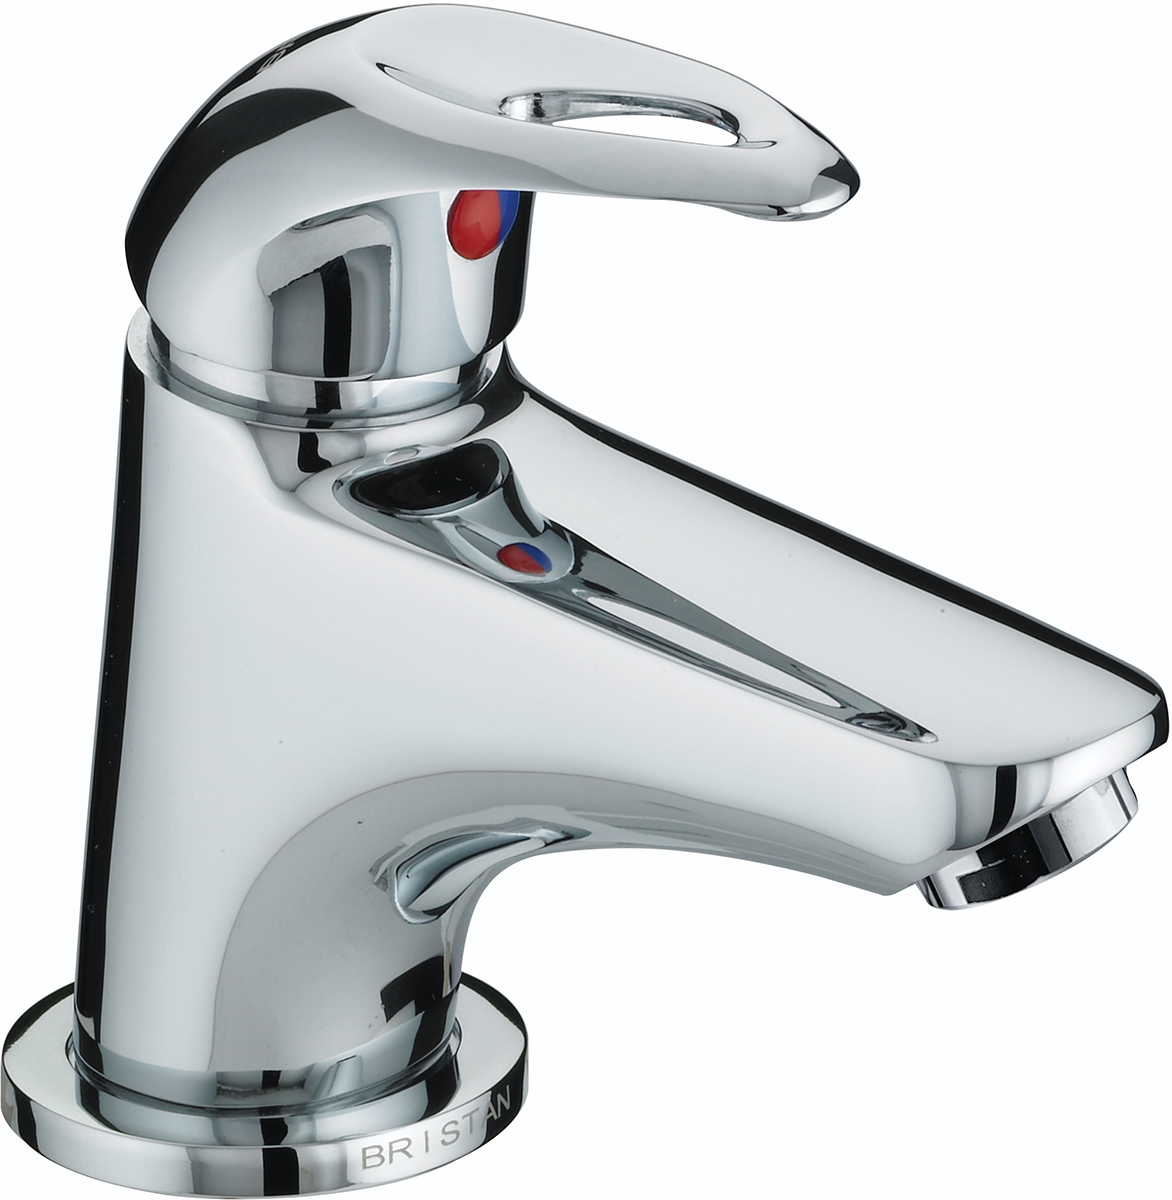 Miniature Basin Mixer with Clicker Waste